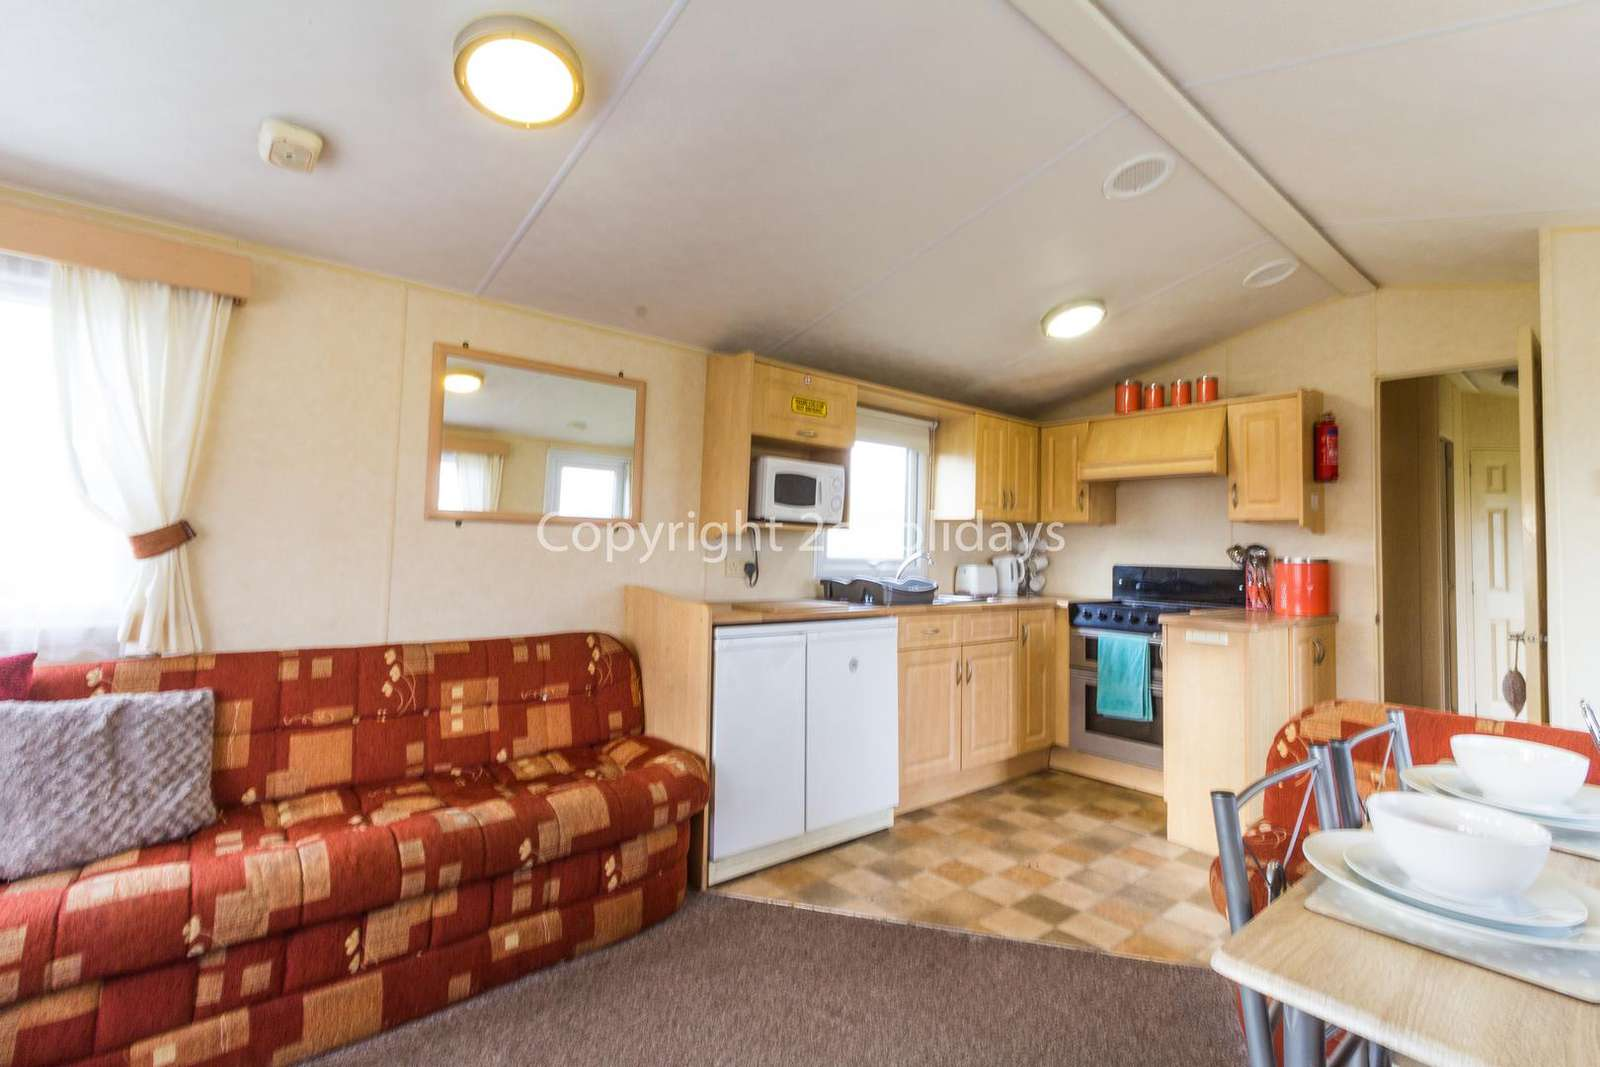 Spacious open plan kitchen diner, great for families!